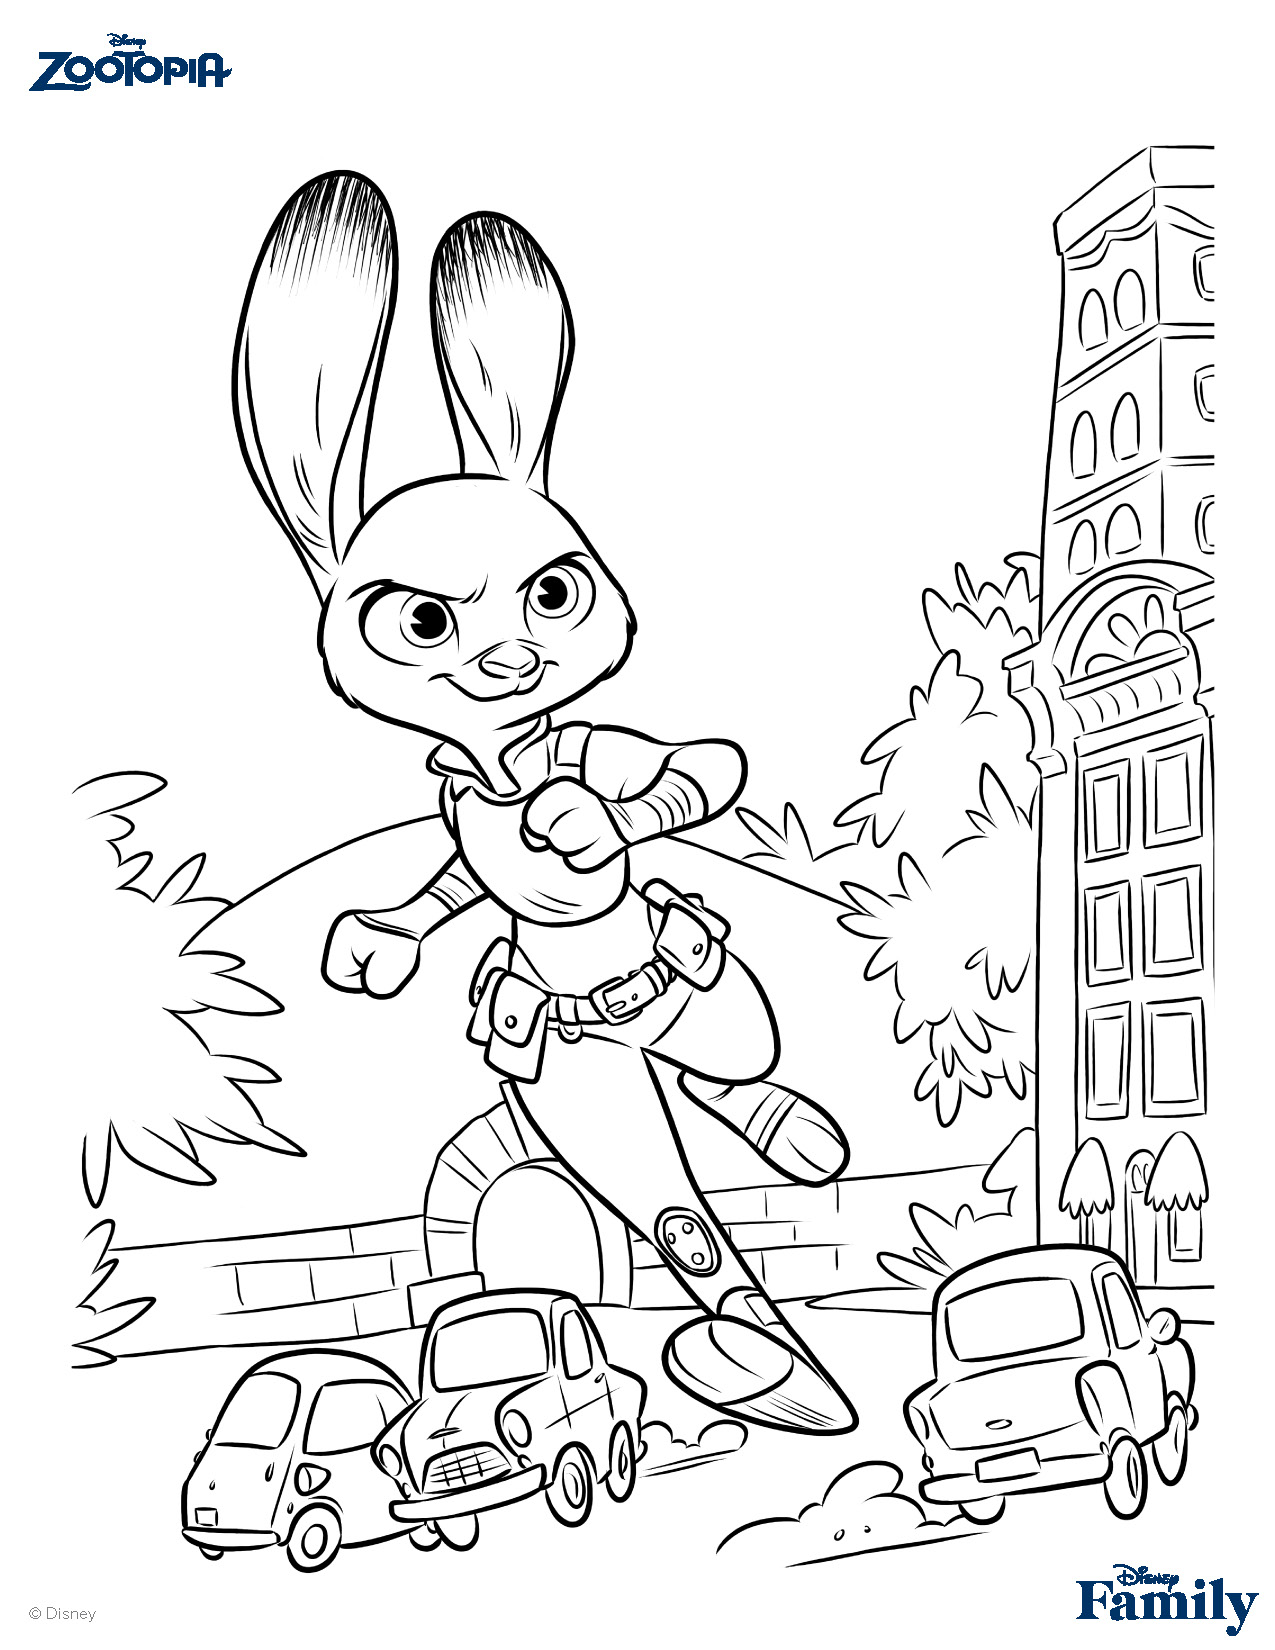 1275x1650 March Printable Calendar Coloring Sheet Disney Family